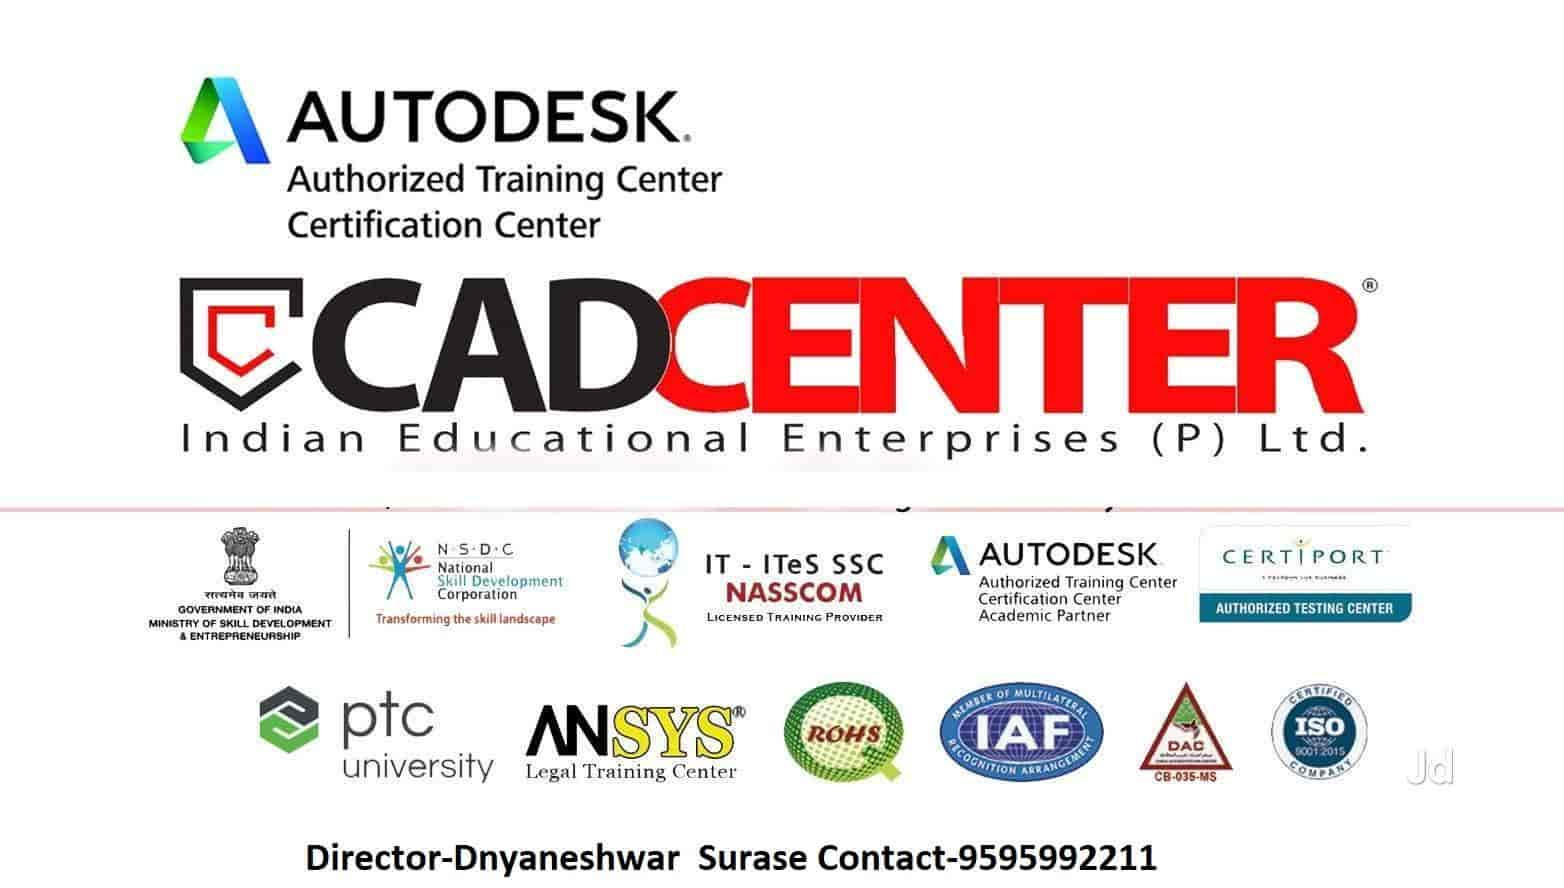 CADCENTER Autodesk Authorised Centre, Osmanpura - AUTOCAD Training